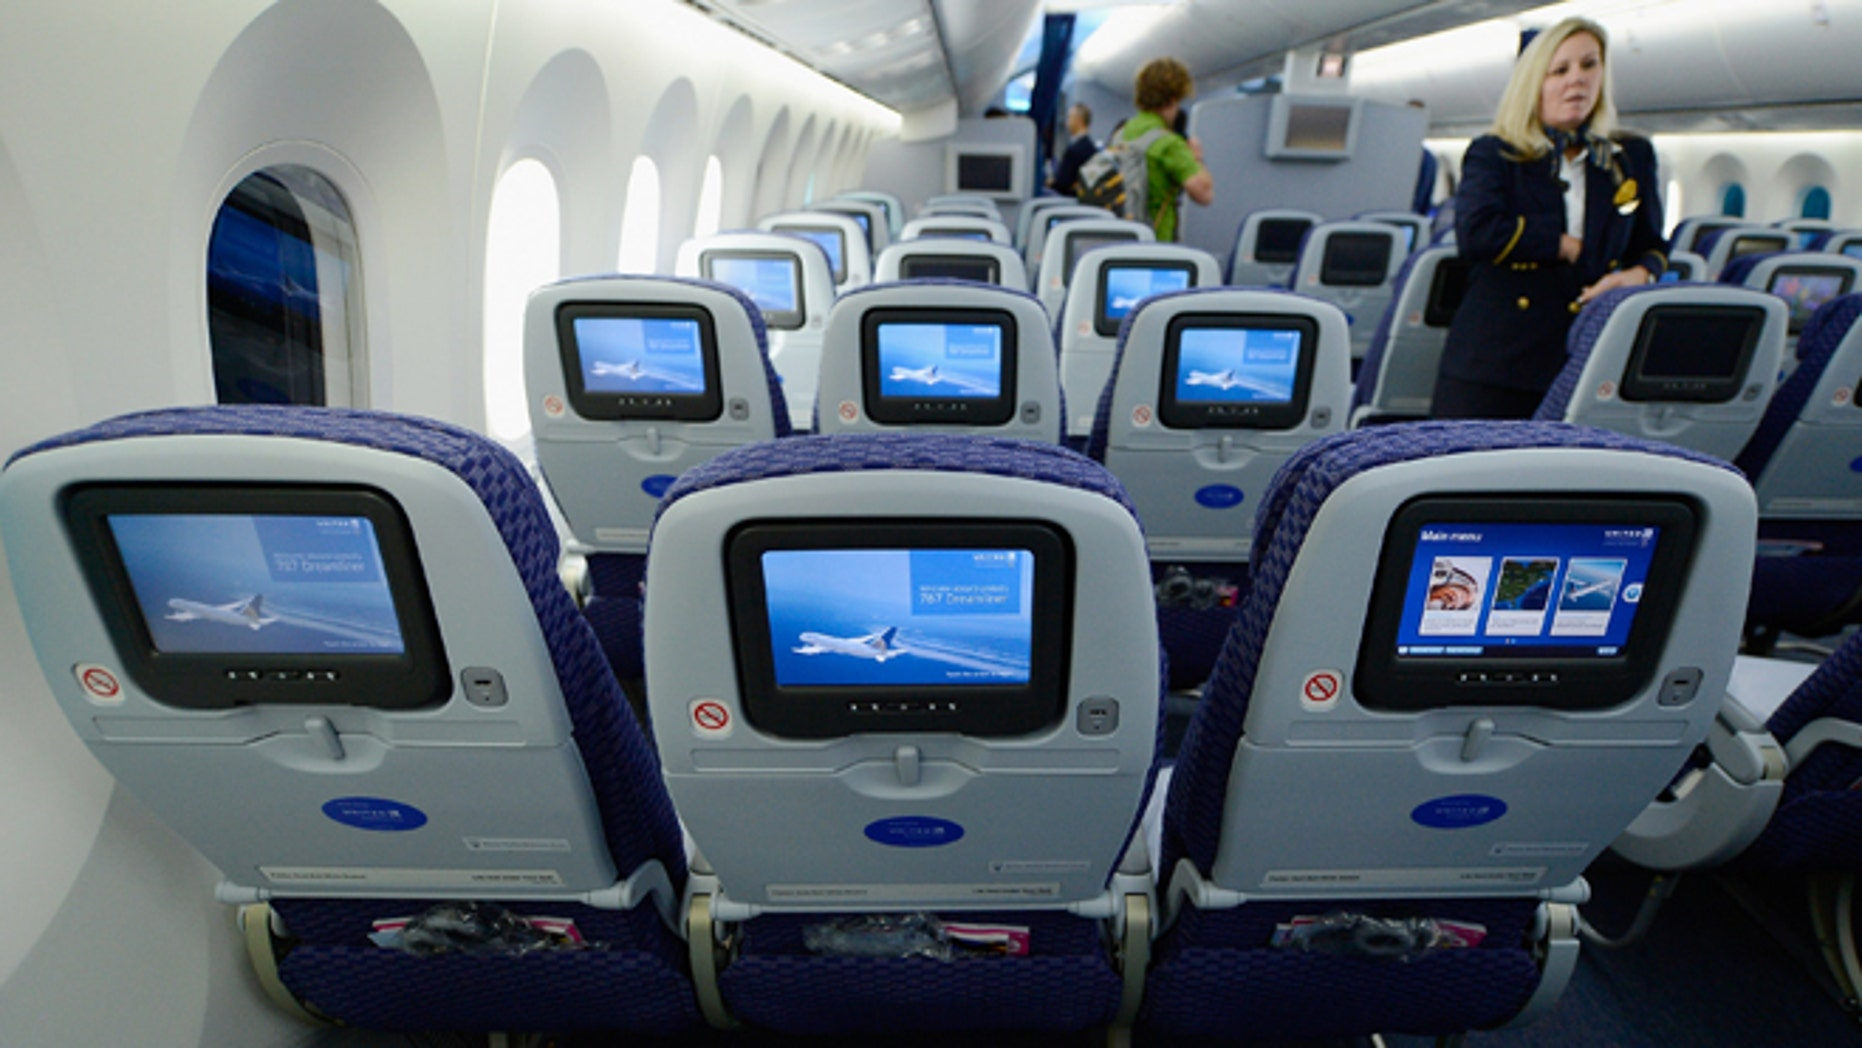 United Airlines flight attendant Tina looks at personal entertainment systems on the new Boeing 787 Dreamliner during a tour of the jet at Los Angeles International Airport on November 30, 2012 in Los Angeles, California. (Photo by Kevork Djansezian/Getty Images)